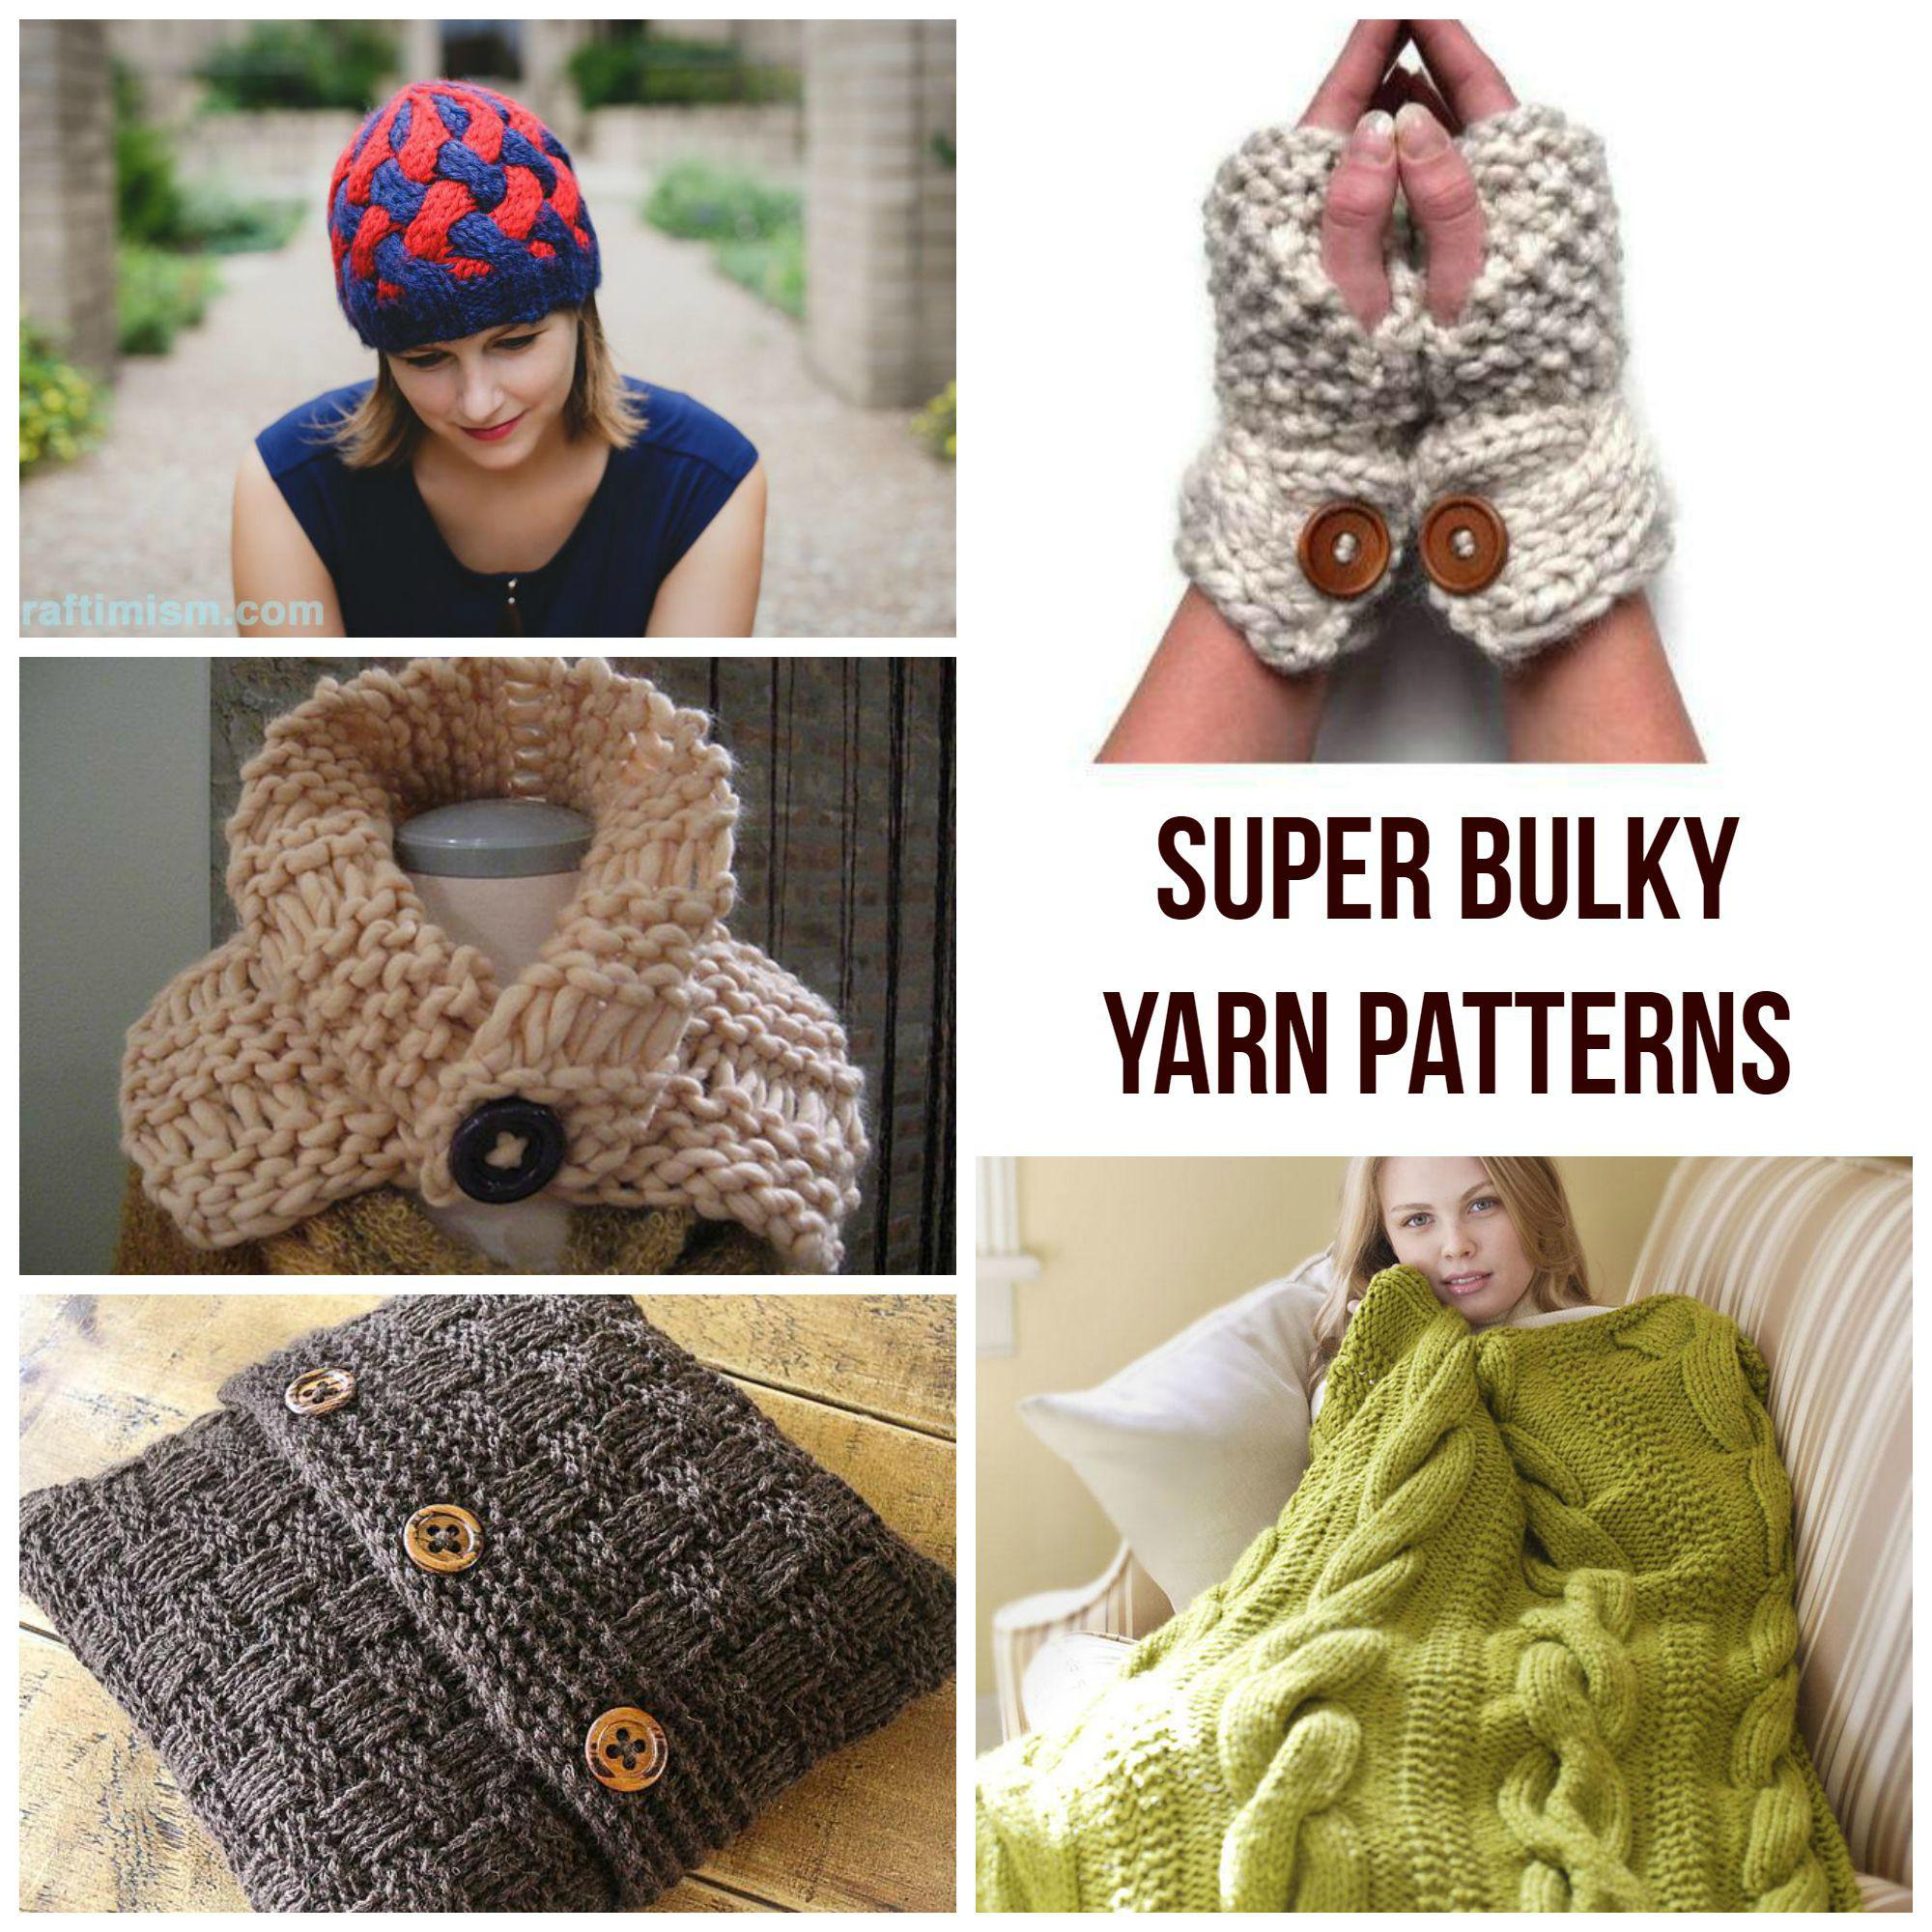 Quick Knits! Super Bulky Yarn Patterns - Craftsy